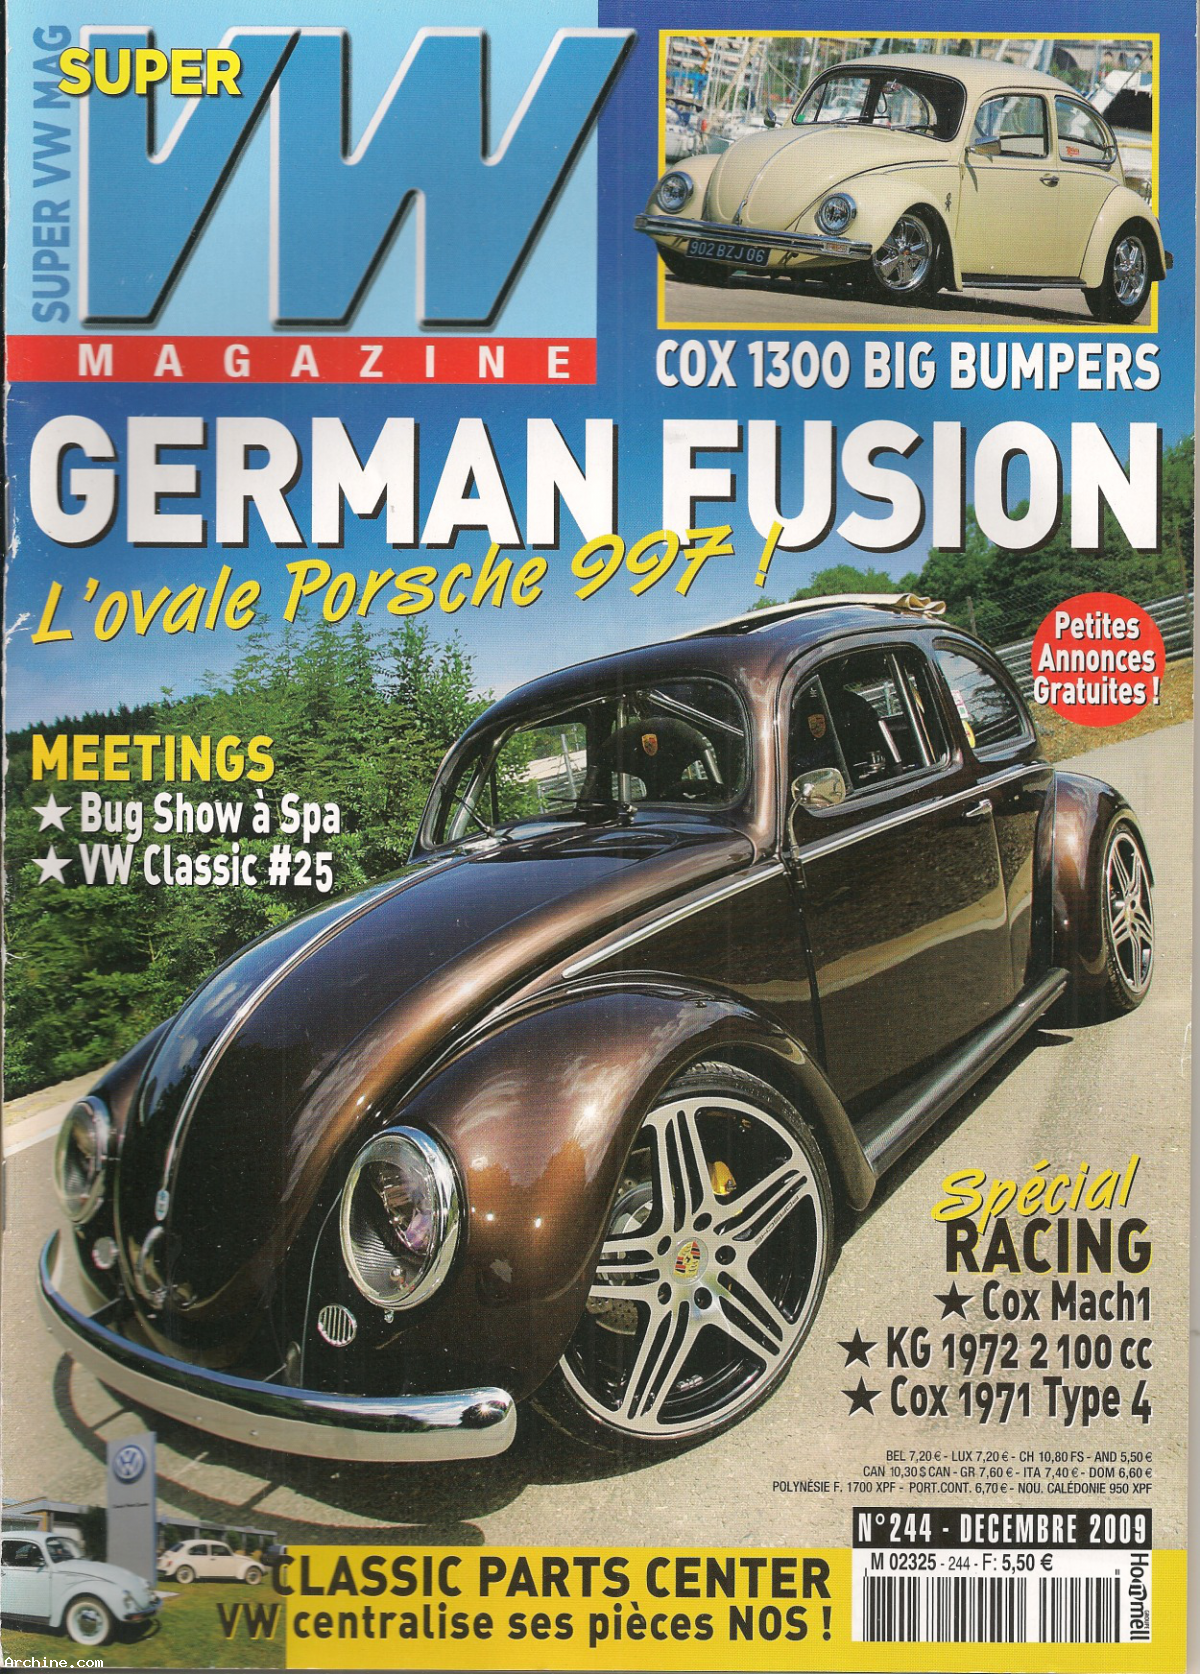 super vw magazine mensuel n 244 german fusion avec poster novembre 2009 archine. Black Bedroom Furniture Sets. Home Design Ideas